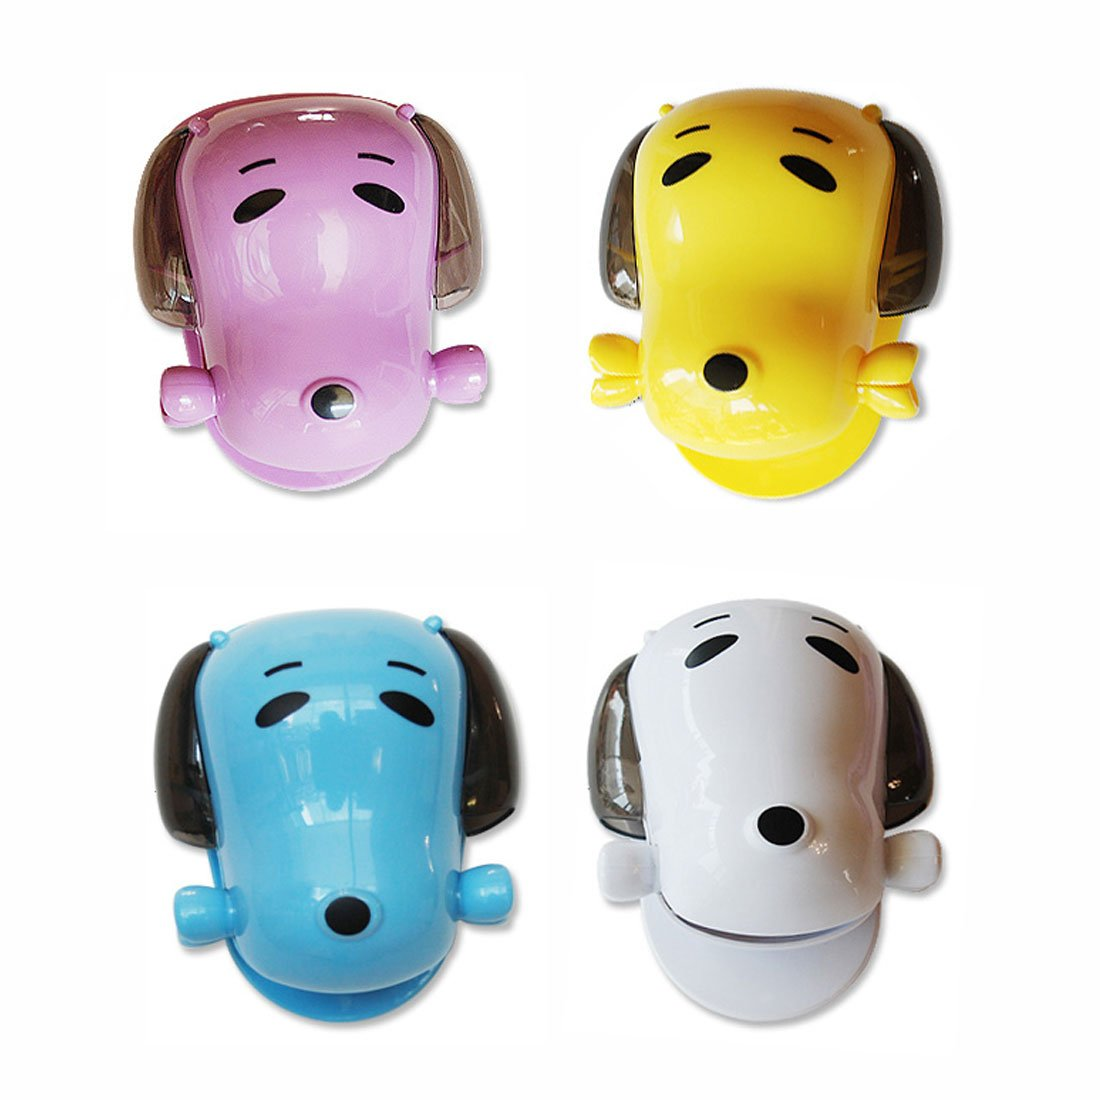 Toothbrush Holder Mini Dog Toothpaste Holder Toothpaste Dispenser (4 colors random) GARASANI